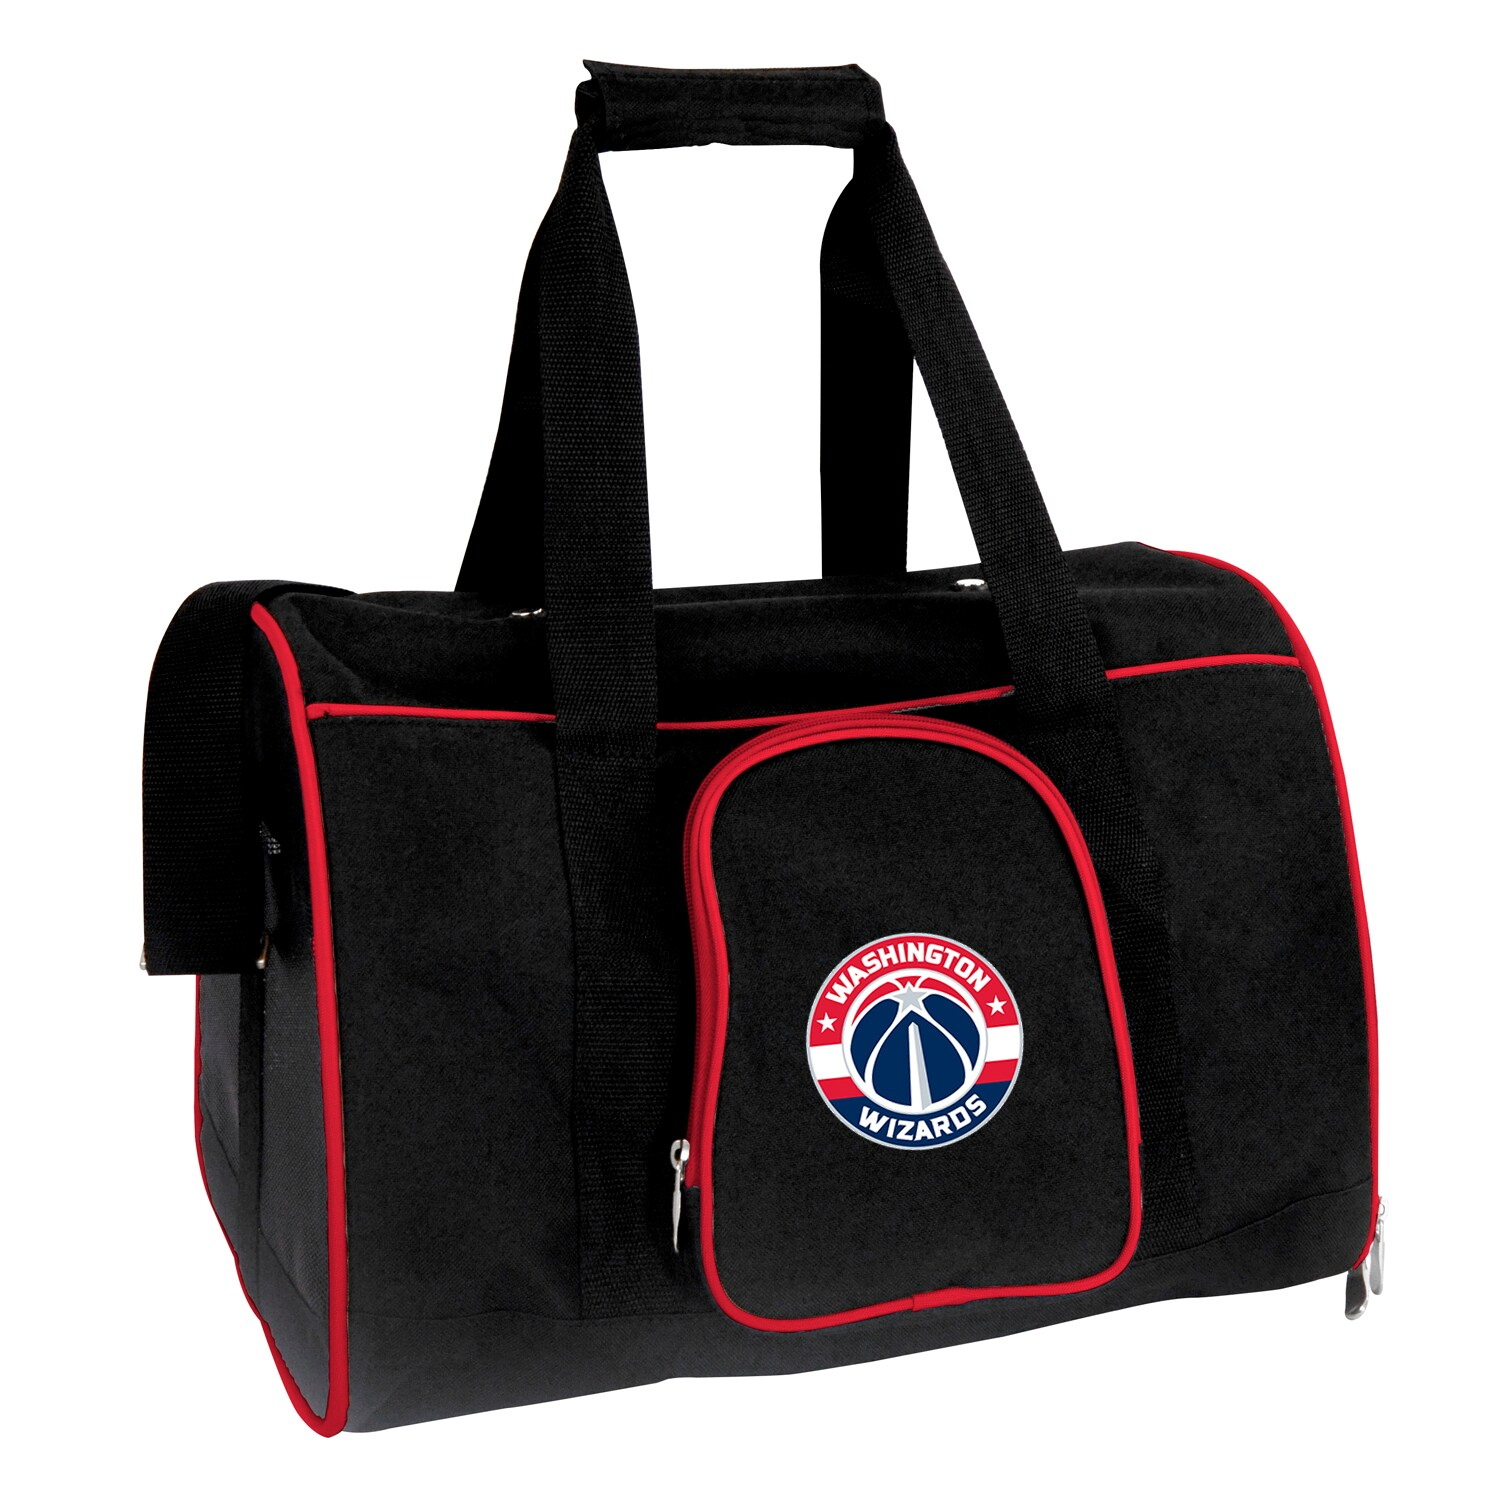 "Washington Wizards Small 16"" Pet Carrier - Black"